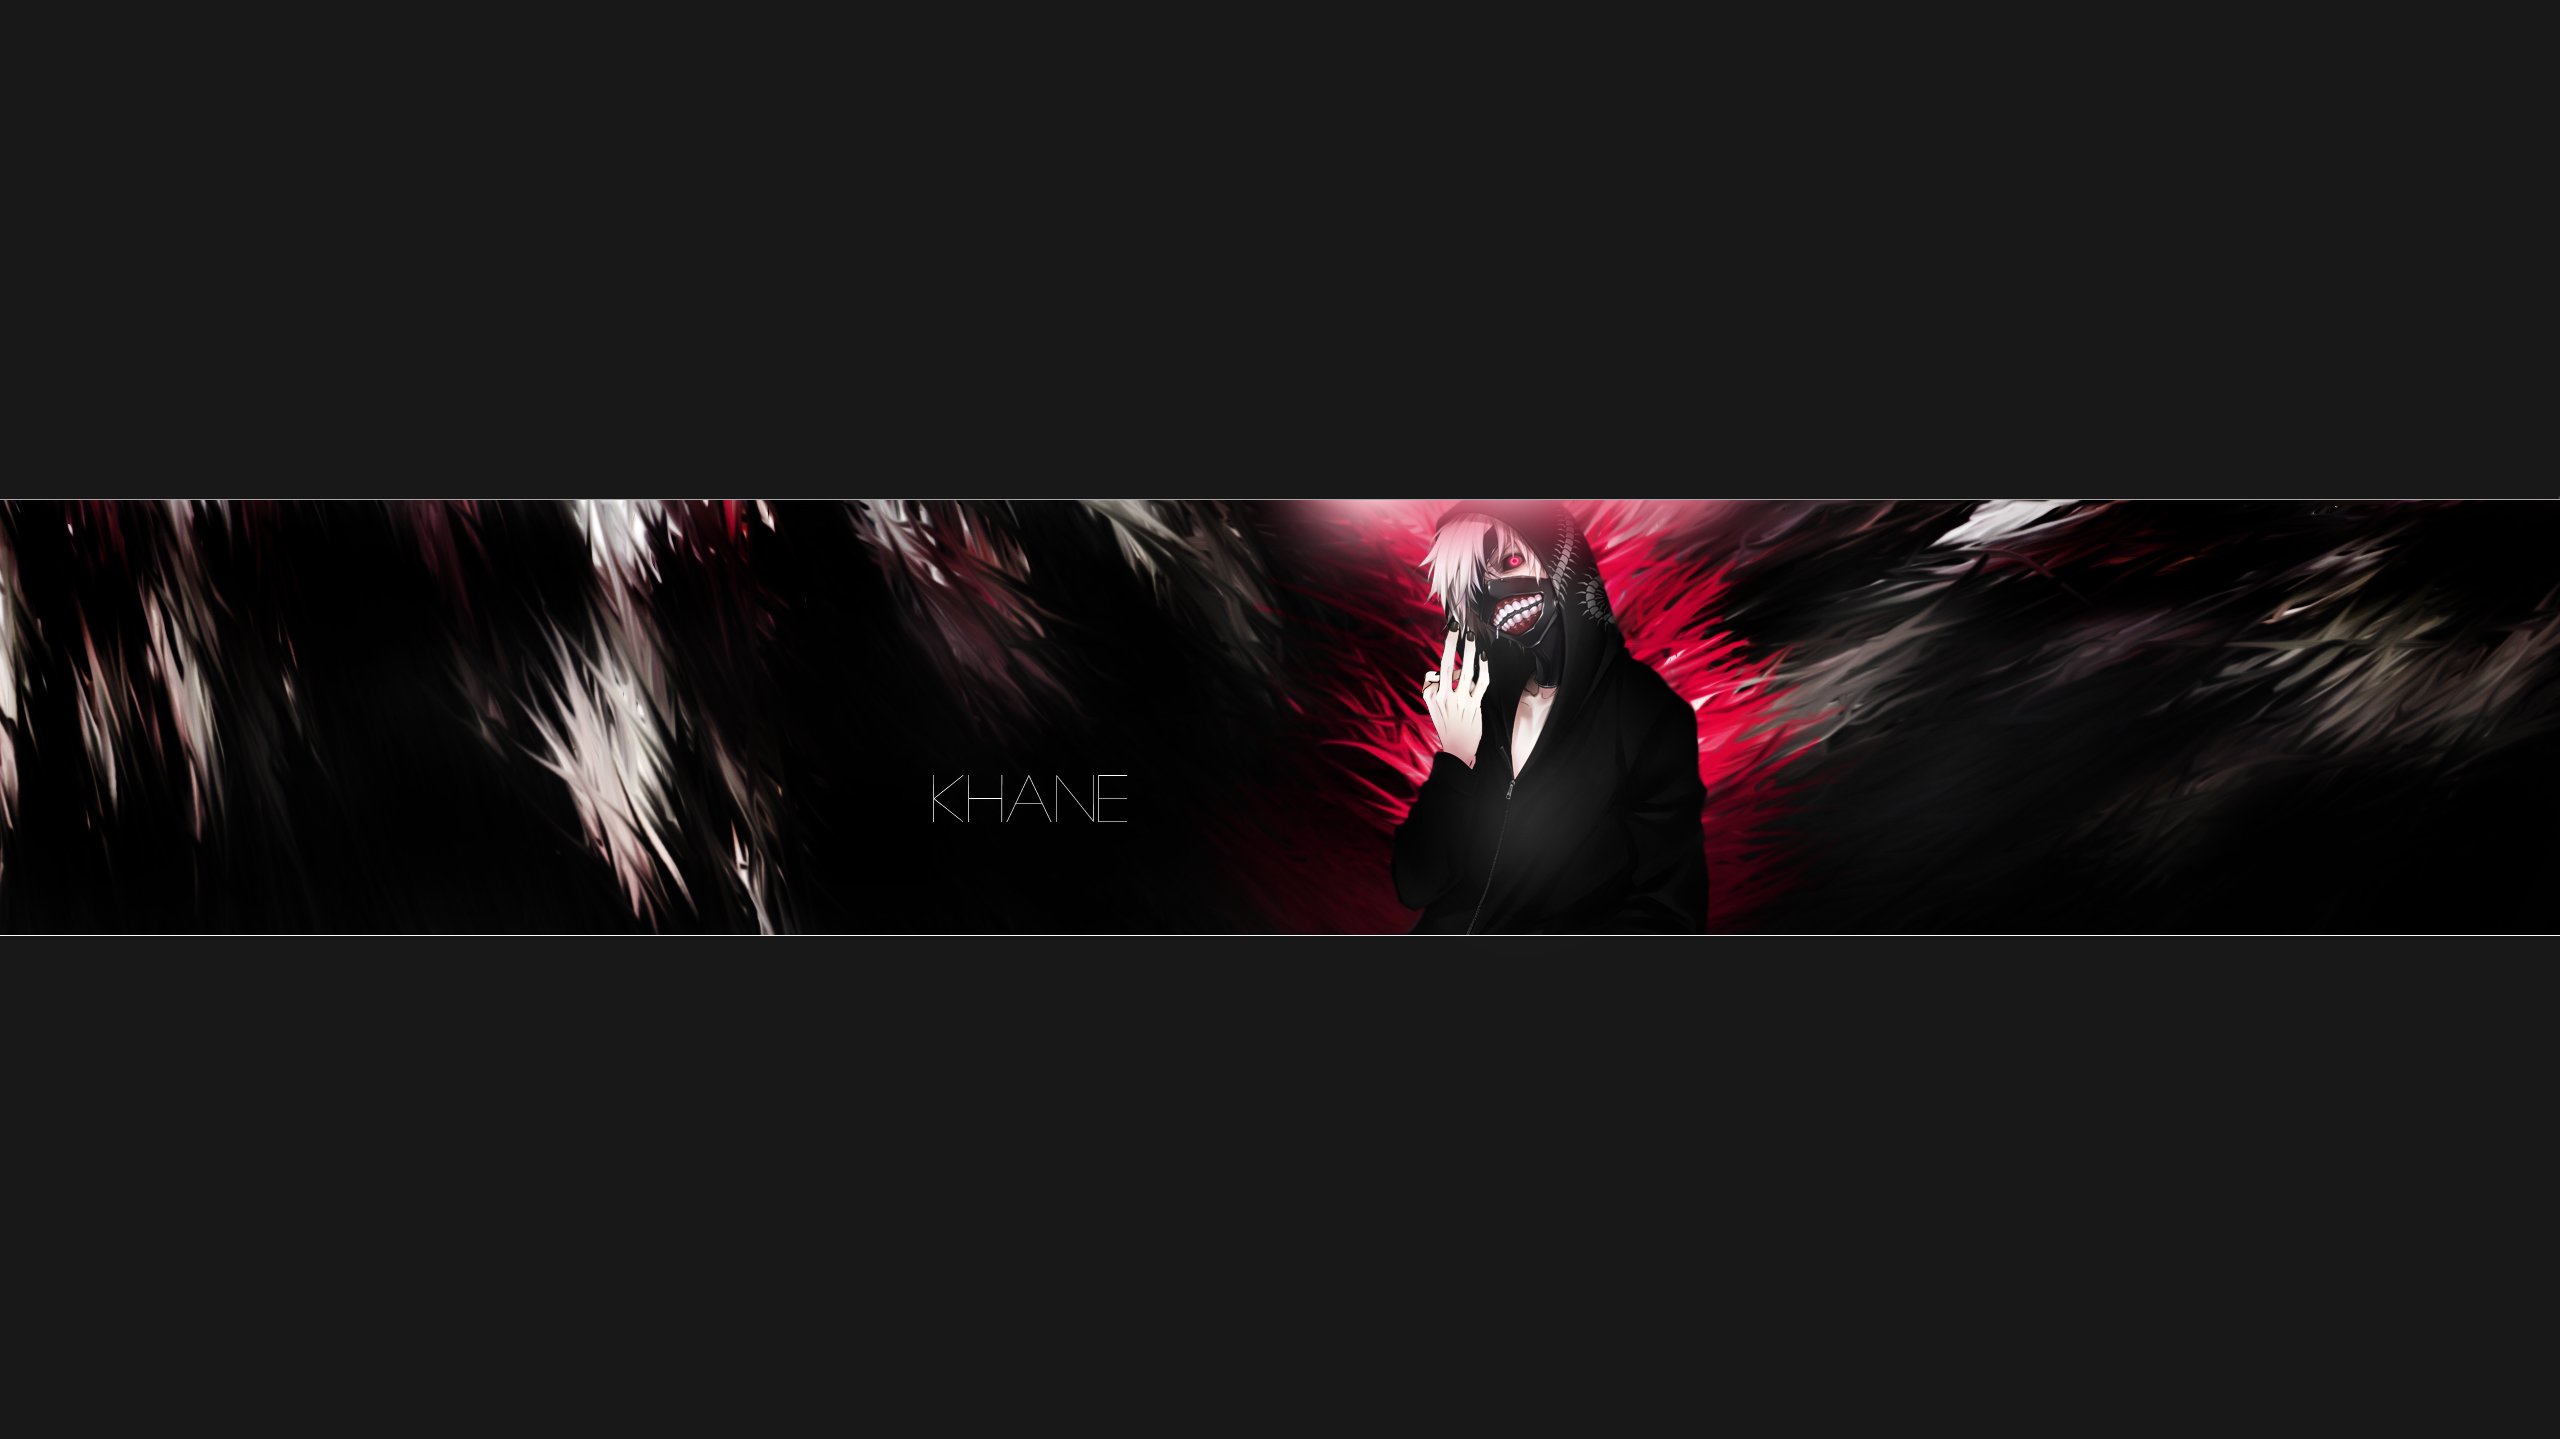 anime tokyo ghoul youtube: Tokyo-Ghoul-Banner By Amchik On DeviantArt